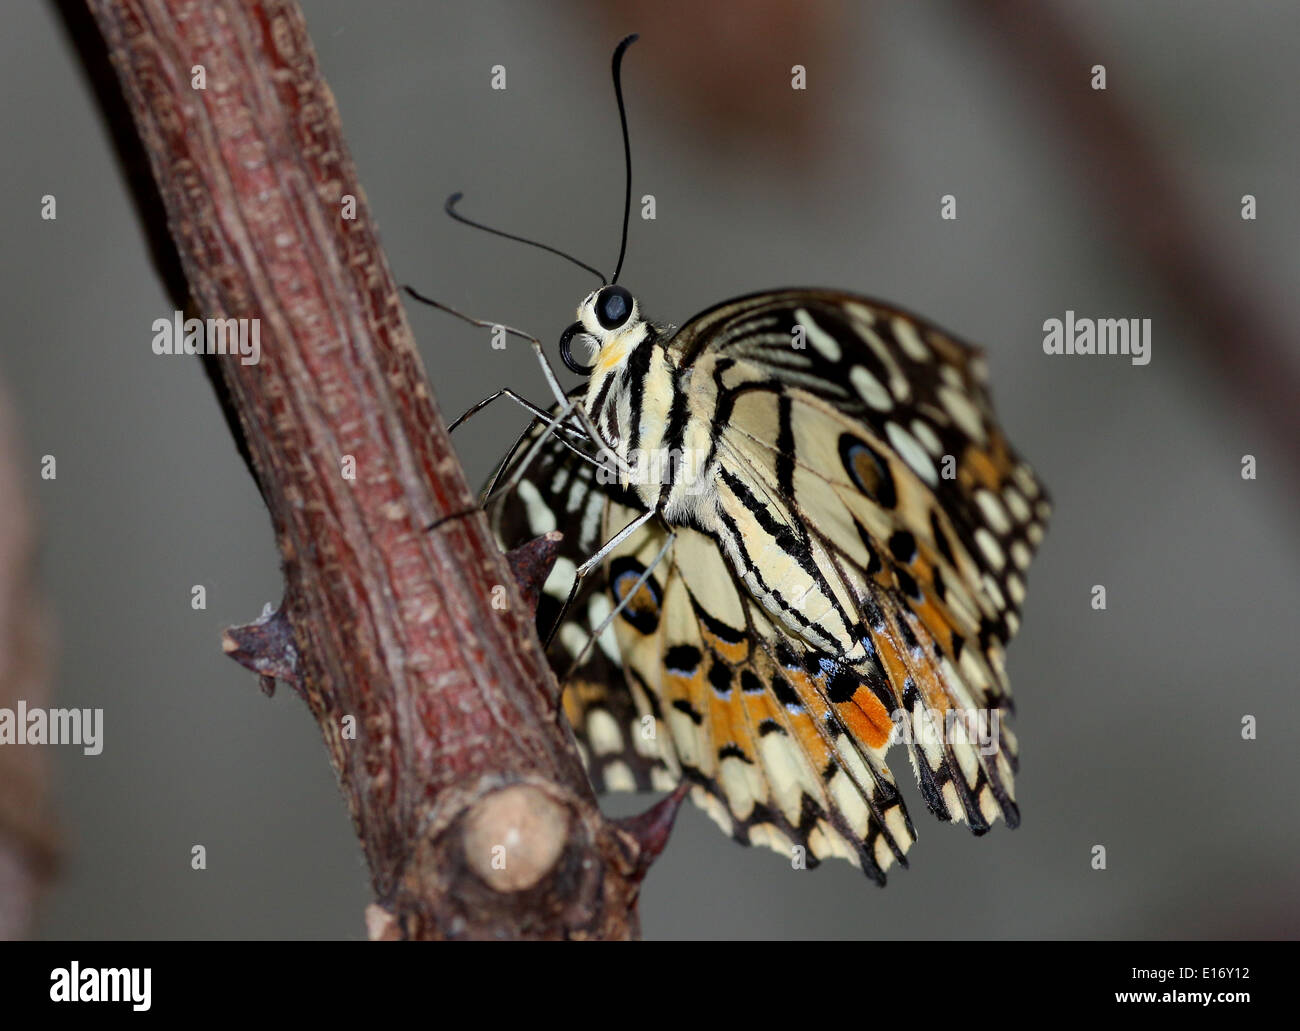 Common Lime Butterfly (Papilio demoleus) a.k.a. Lemon Butterfly, Chequered Swallowtail, Lime Swallowtail, Small Stock Photo